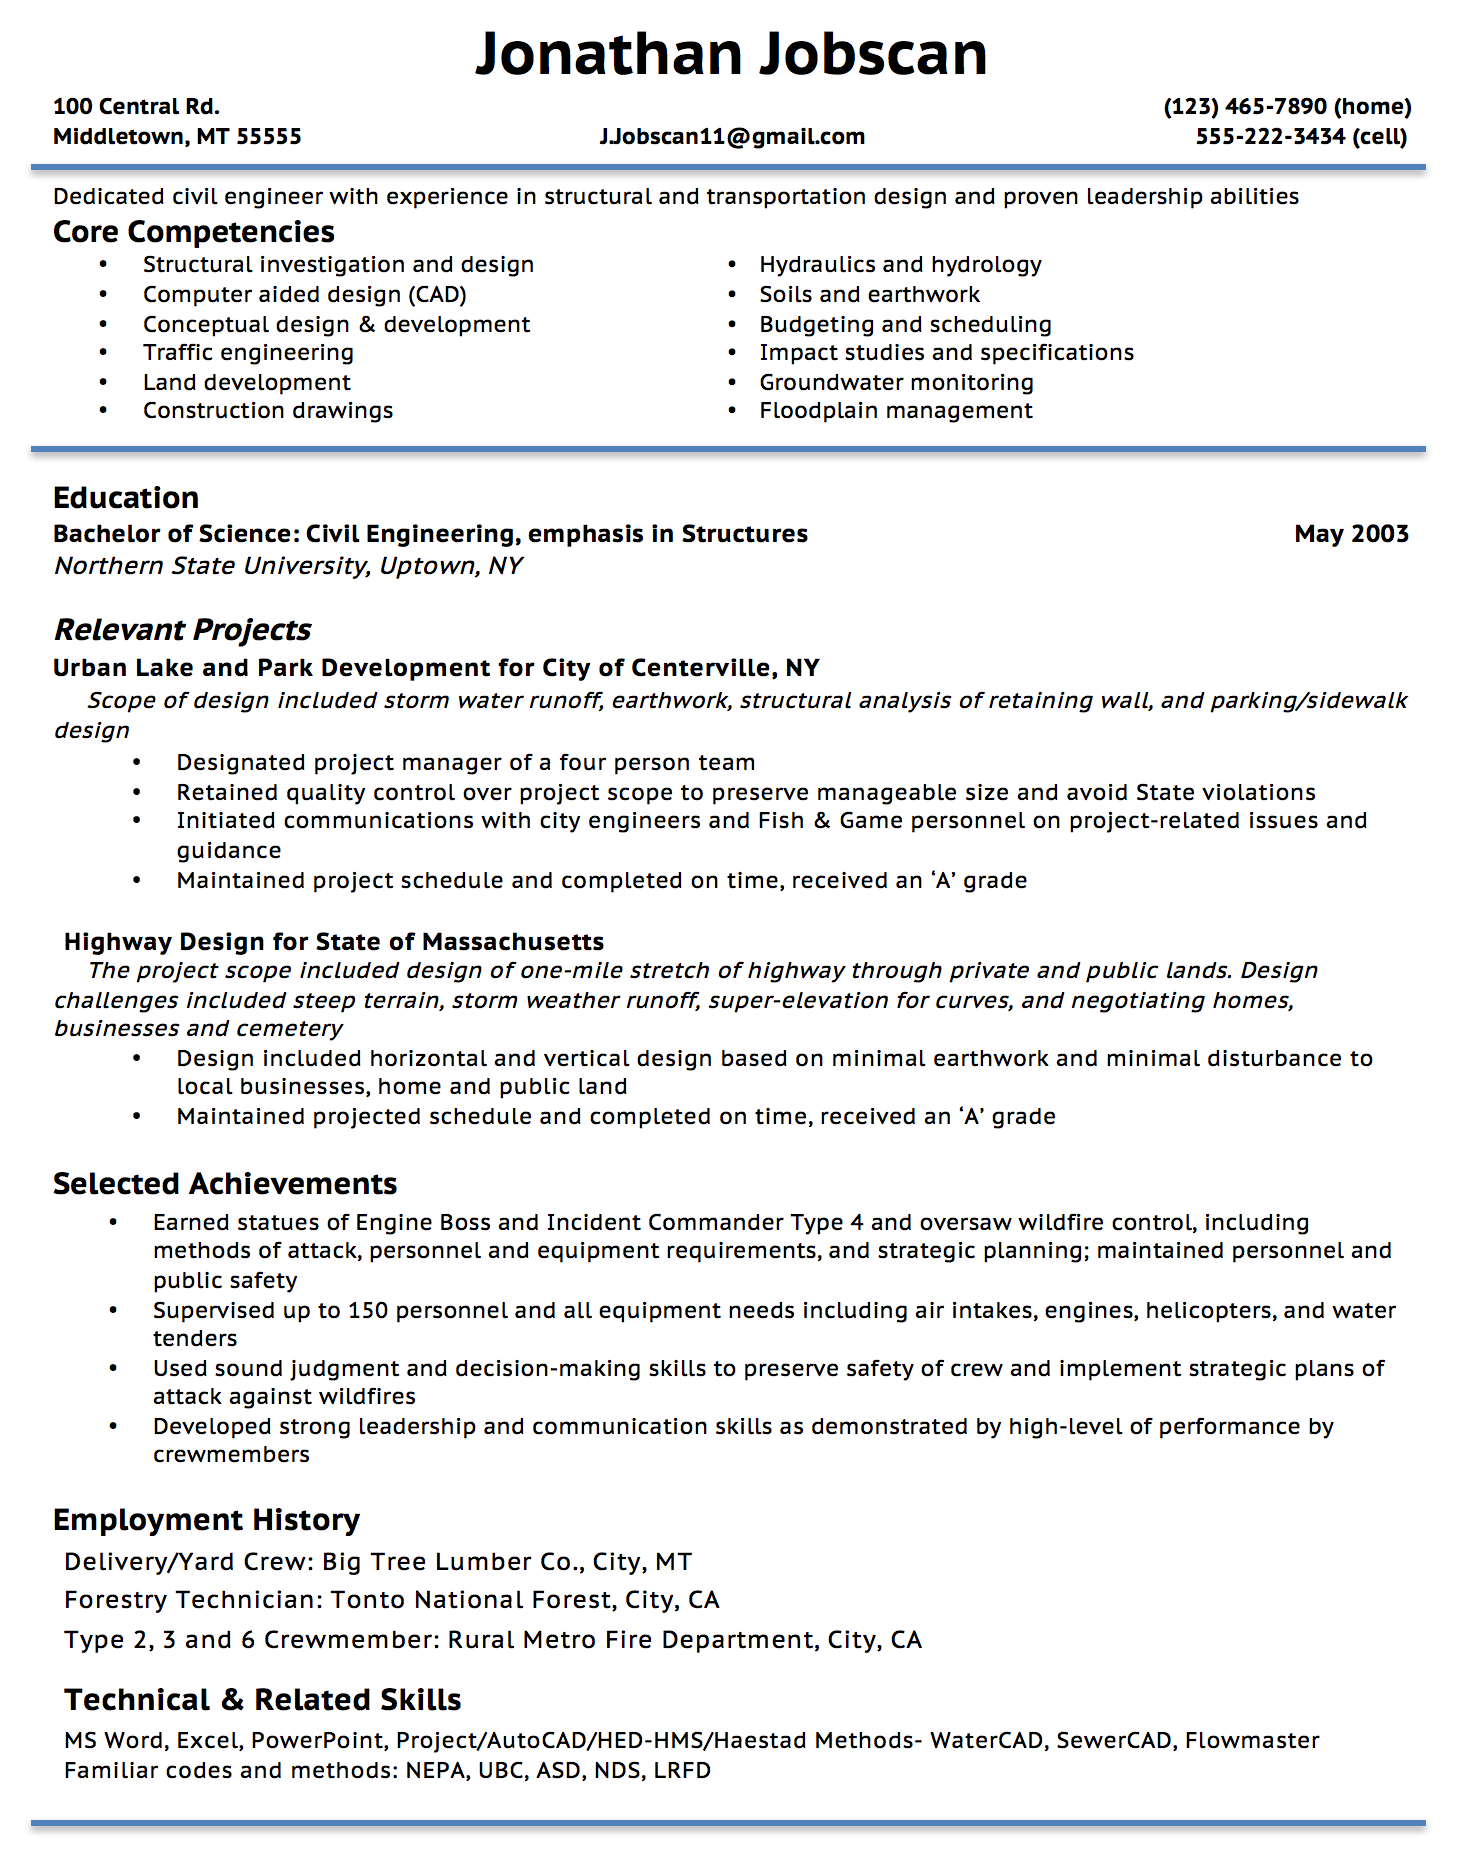 Opposenewapstandardsus  Picturesque Resume Writing Guide  Jobscan With Entrancing Example Of A Functional Resume Format With Charming Model Resumes Also Resume For Laborer In Addition Geology Resume And Bilingual In Resume As Well As Example For Resume Additionally Does Word Have A Resume Template From Jobscanco With Opposenewapstandardsus  Entrancing Resume Writing Guide  Jobscan With Charming Example Of A Functional Resume Format And Picturesque Model Resumes Also Resume For Laborer In Addition Geology Resume From Jobscanco